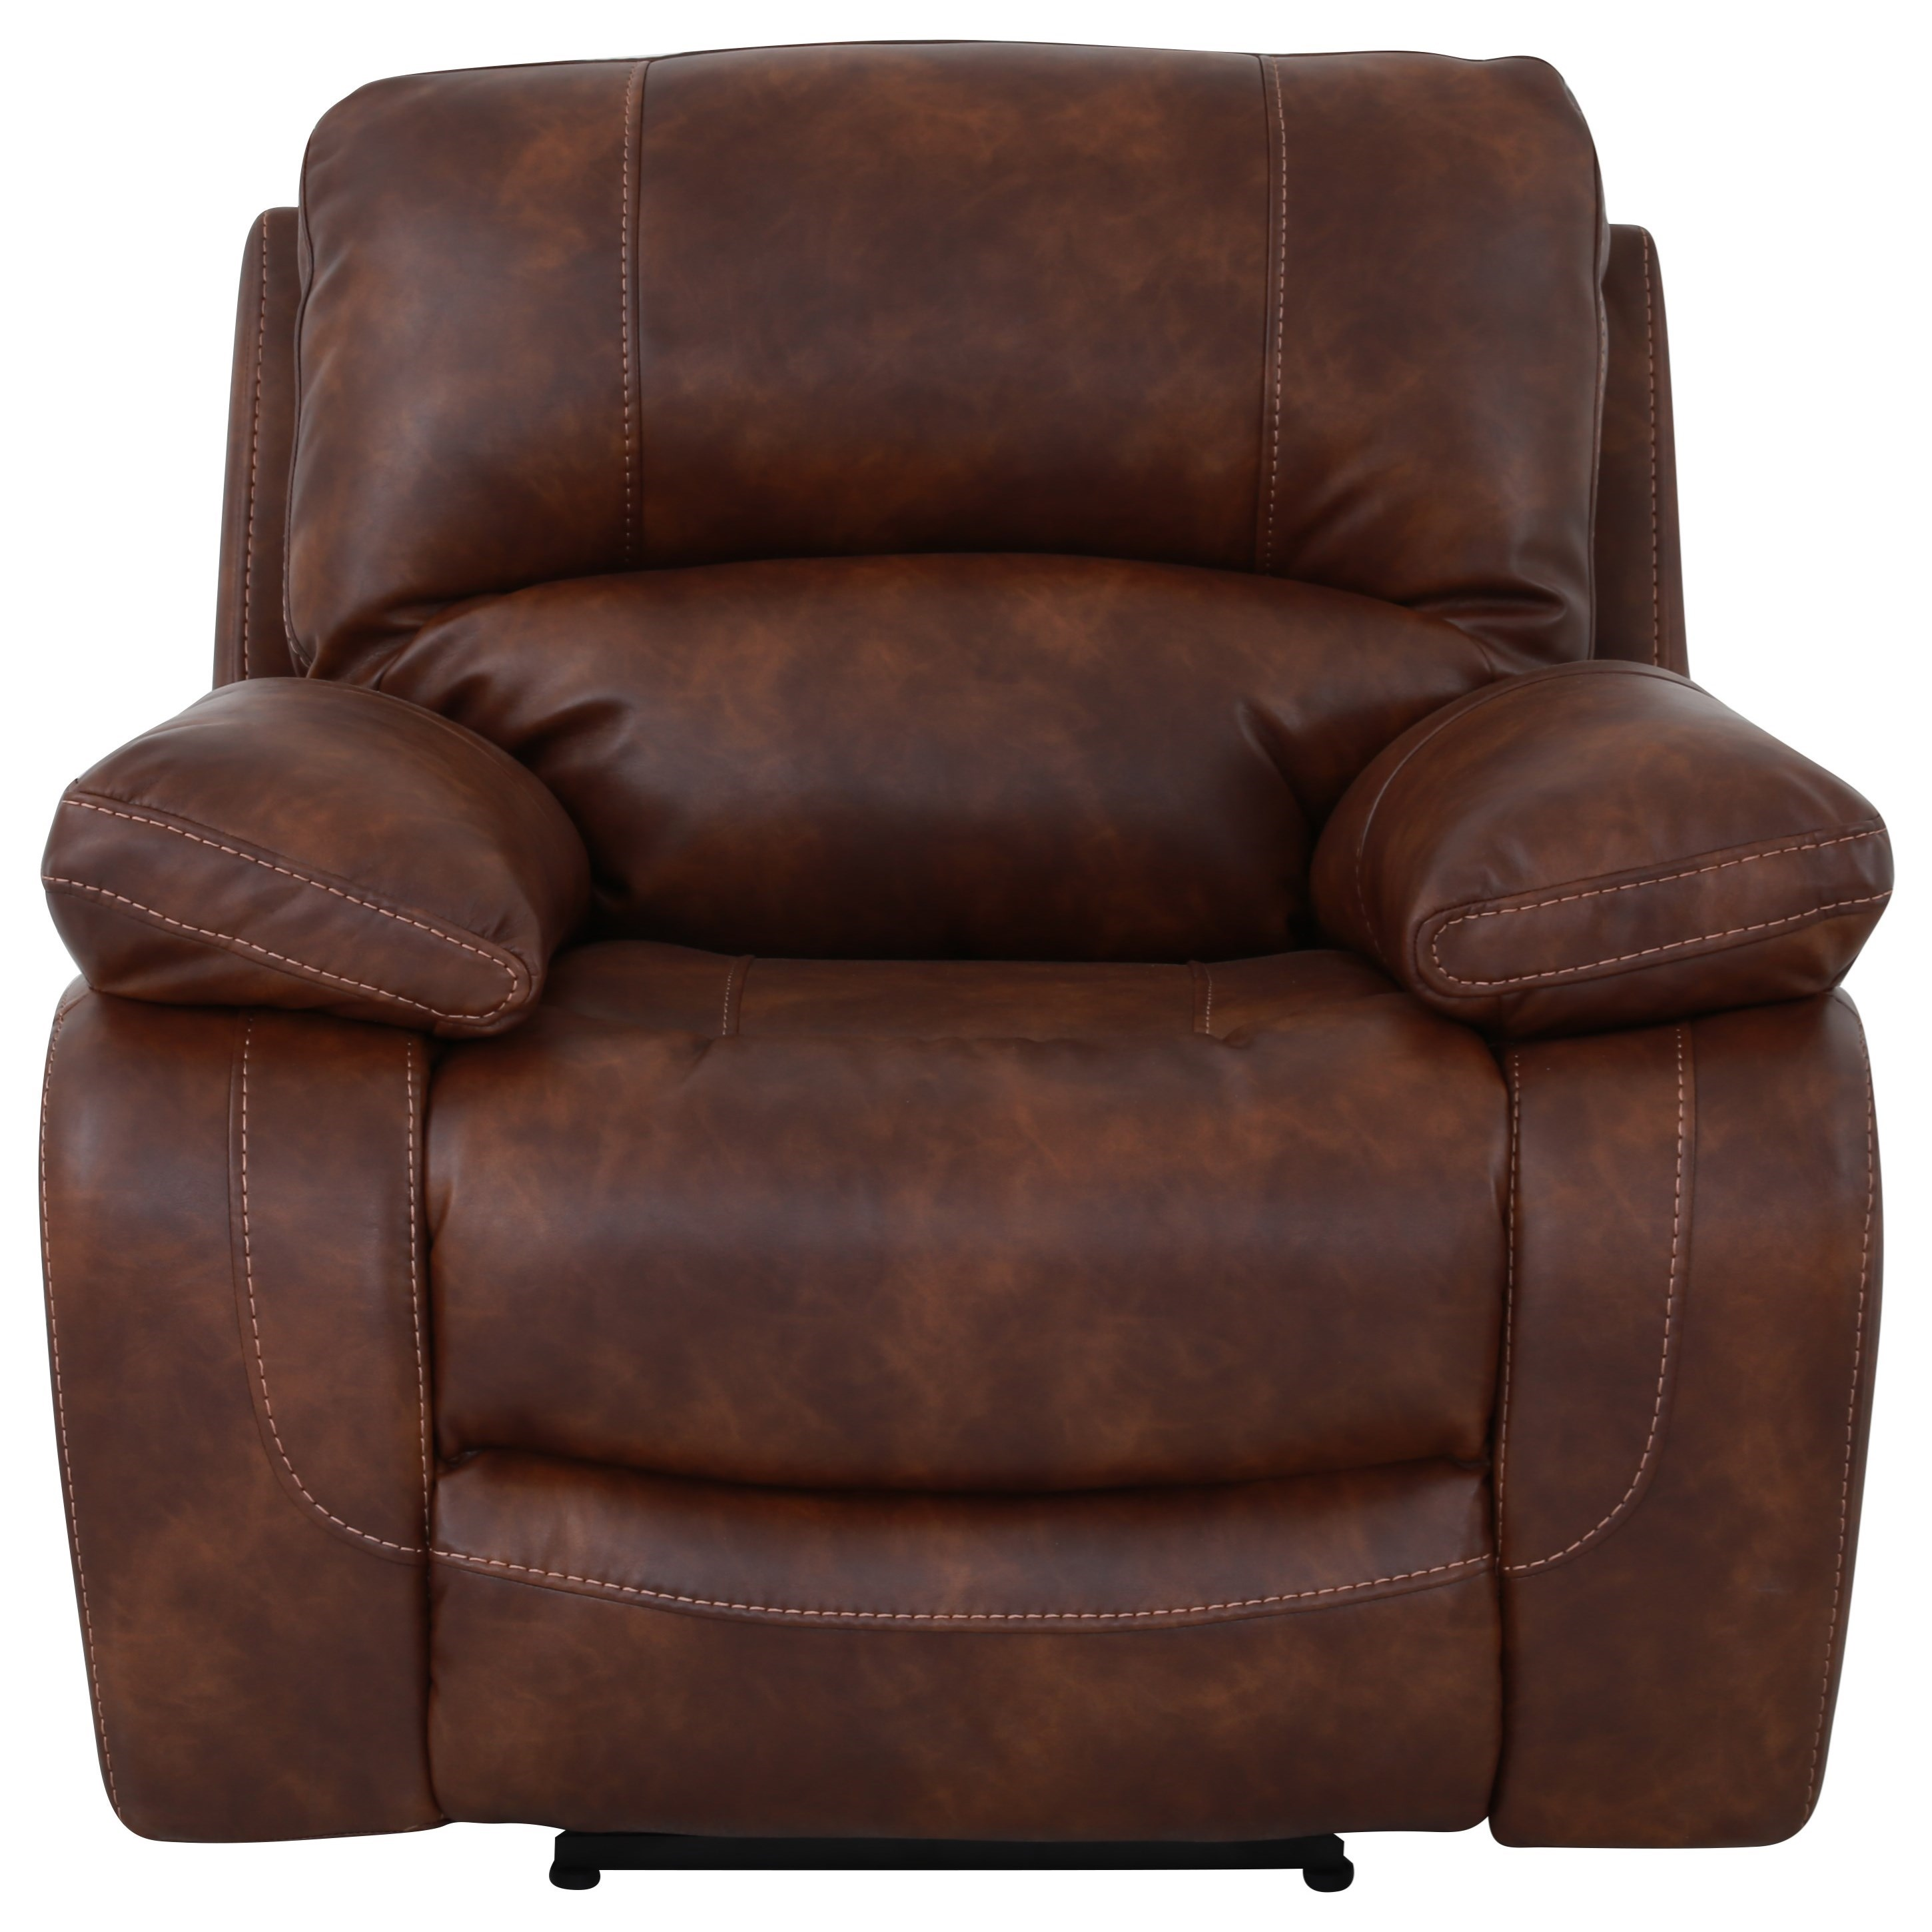 1010 Power Recliner by Cheers Sofa at Lagniappe Home Store